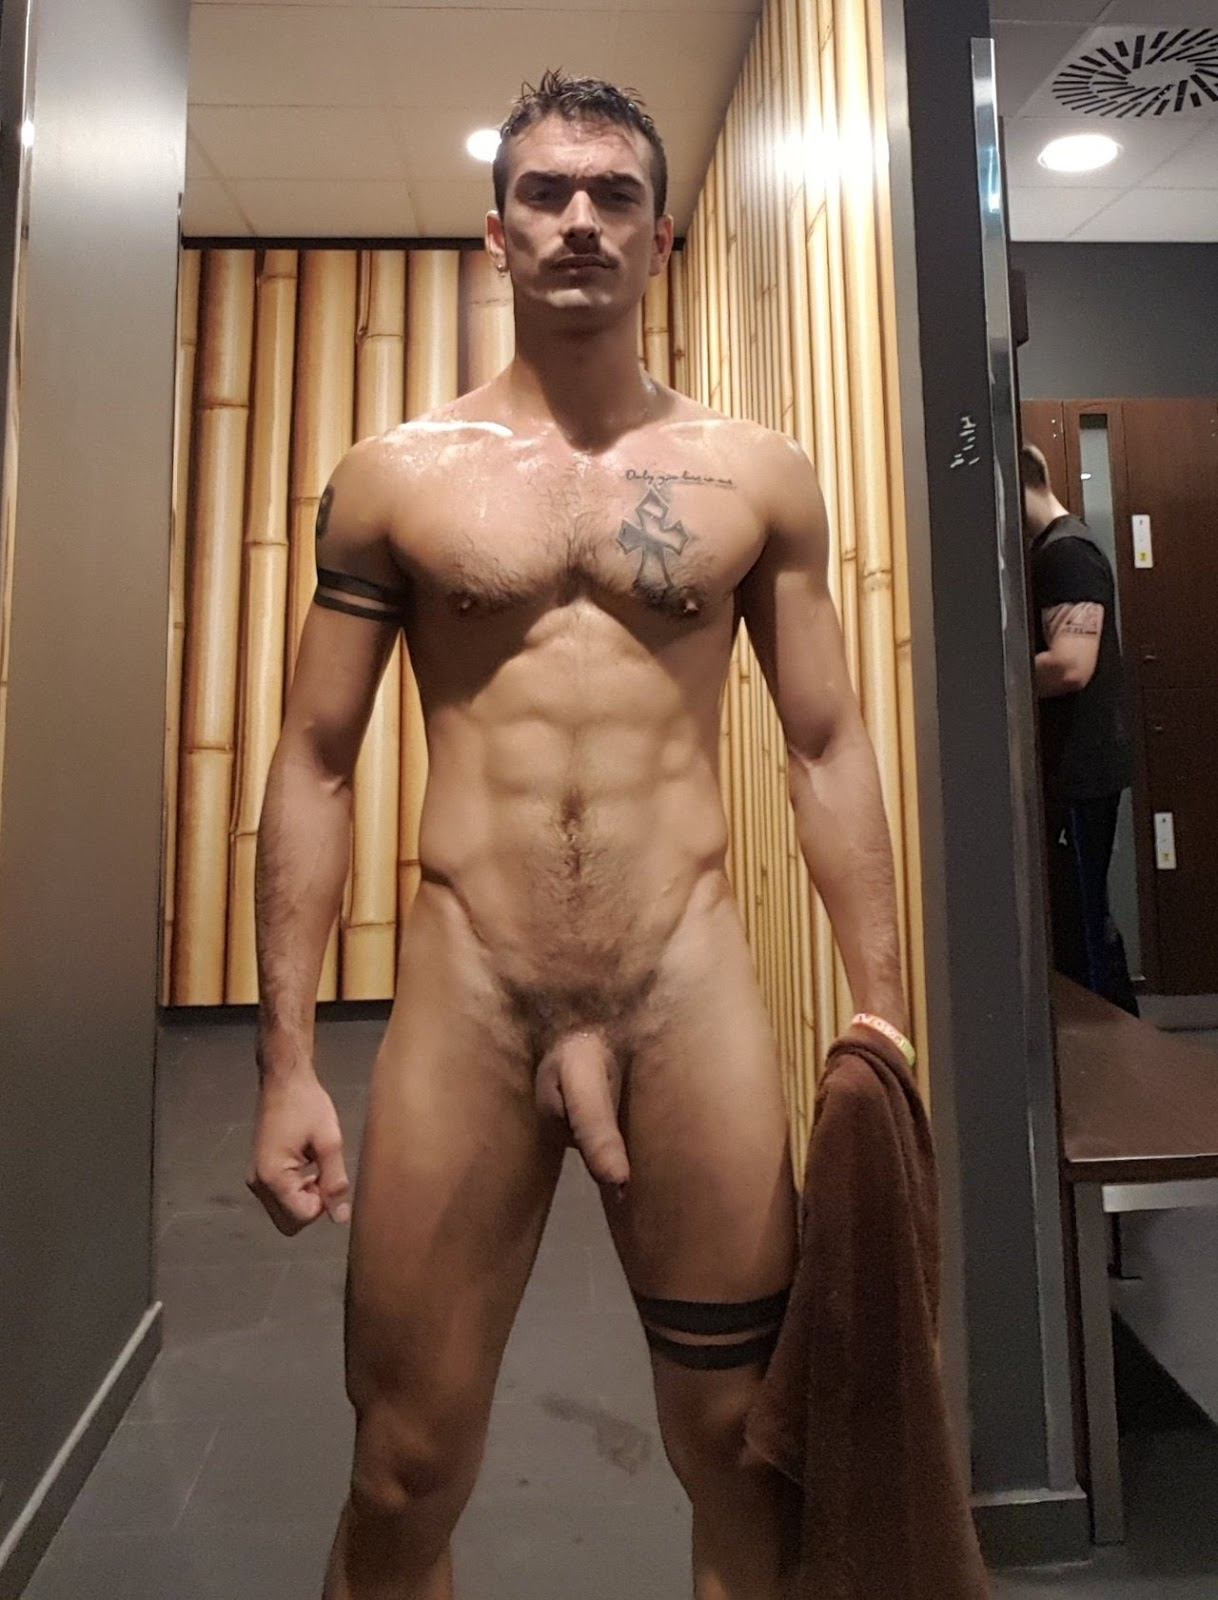 Naked Male In Locker Room